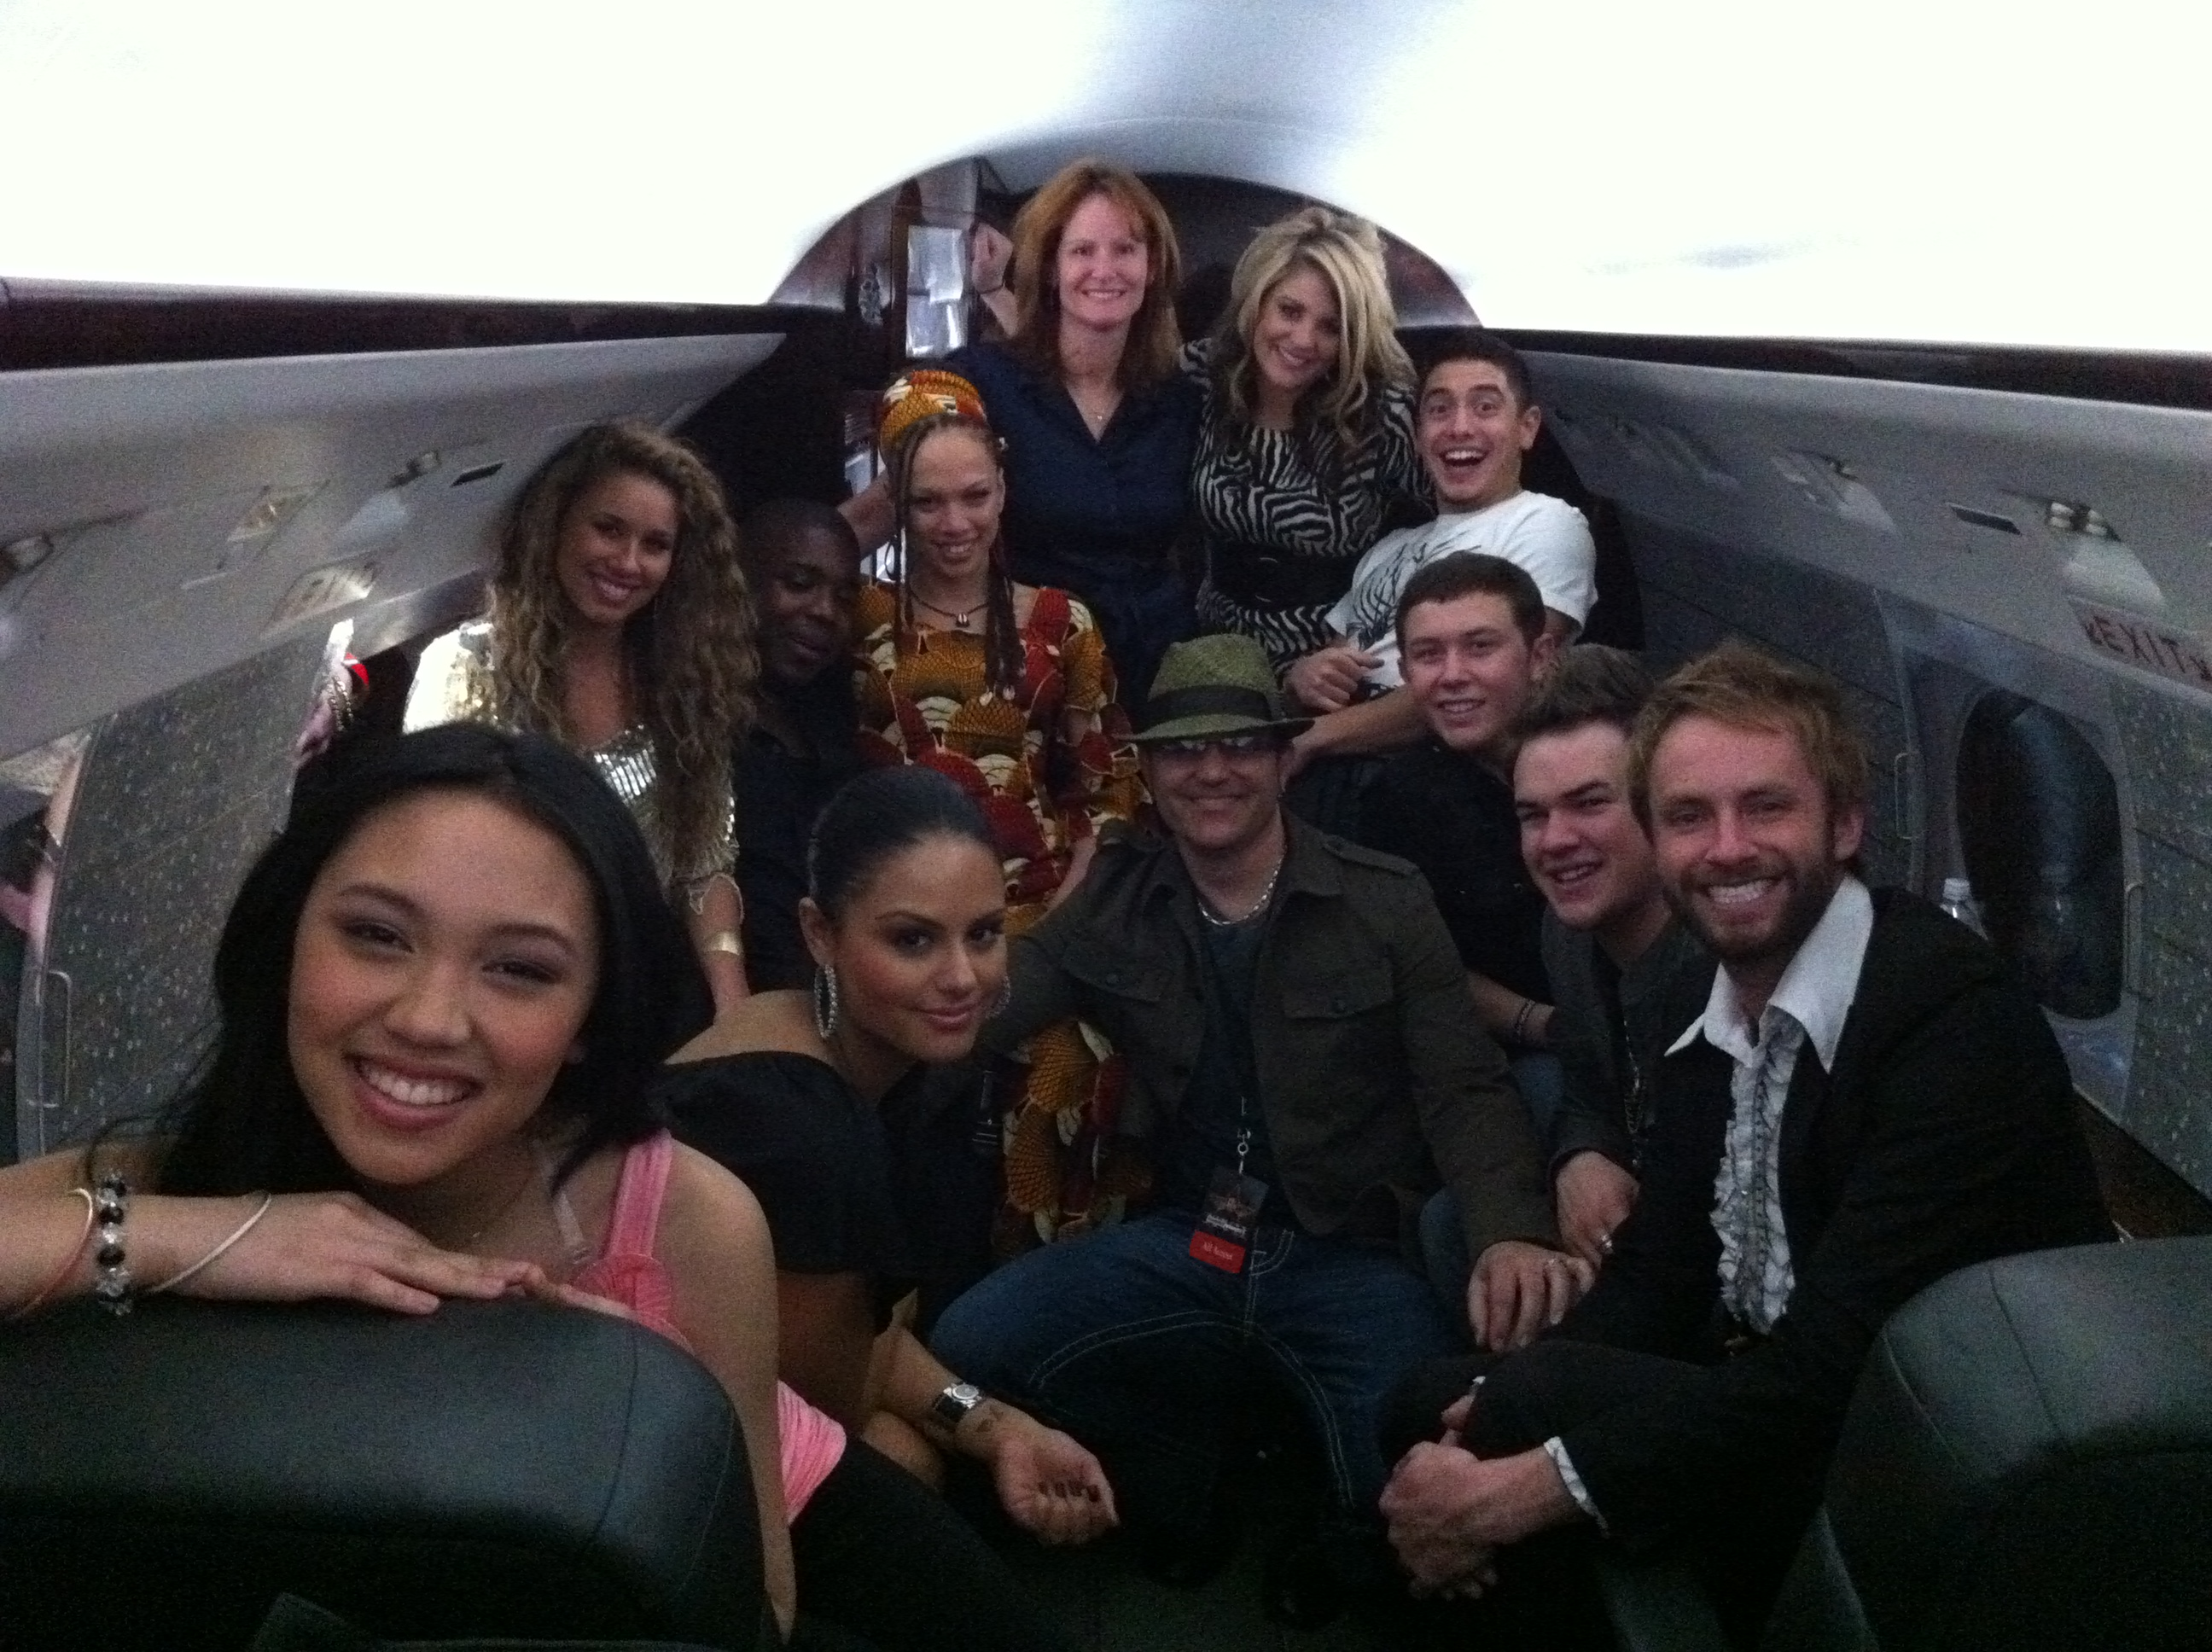 Ken & American Idol Season 10 cast